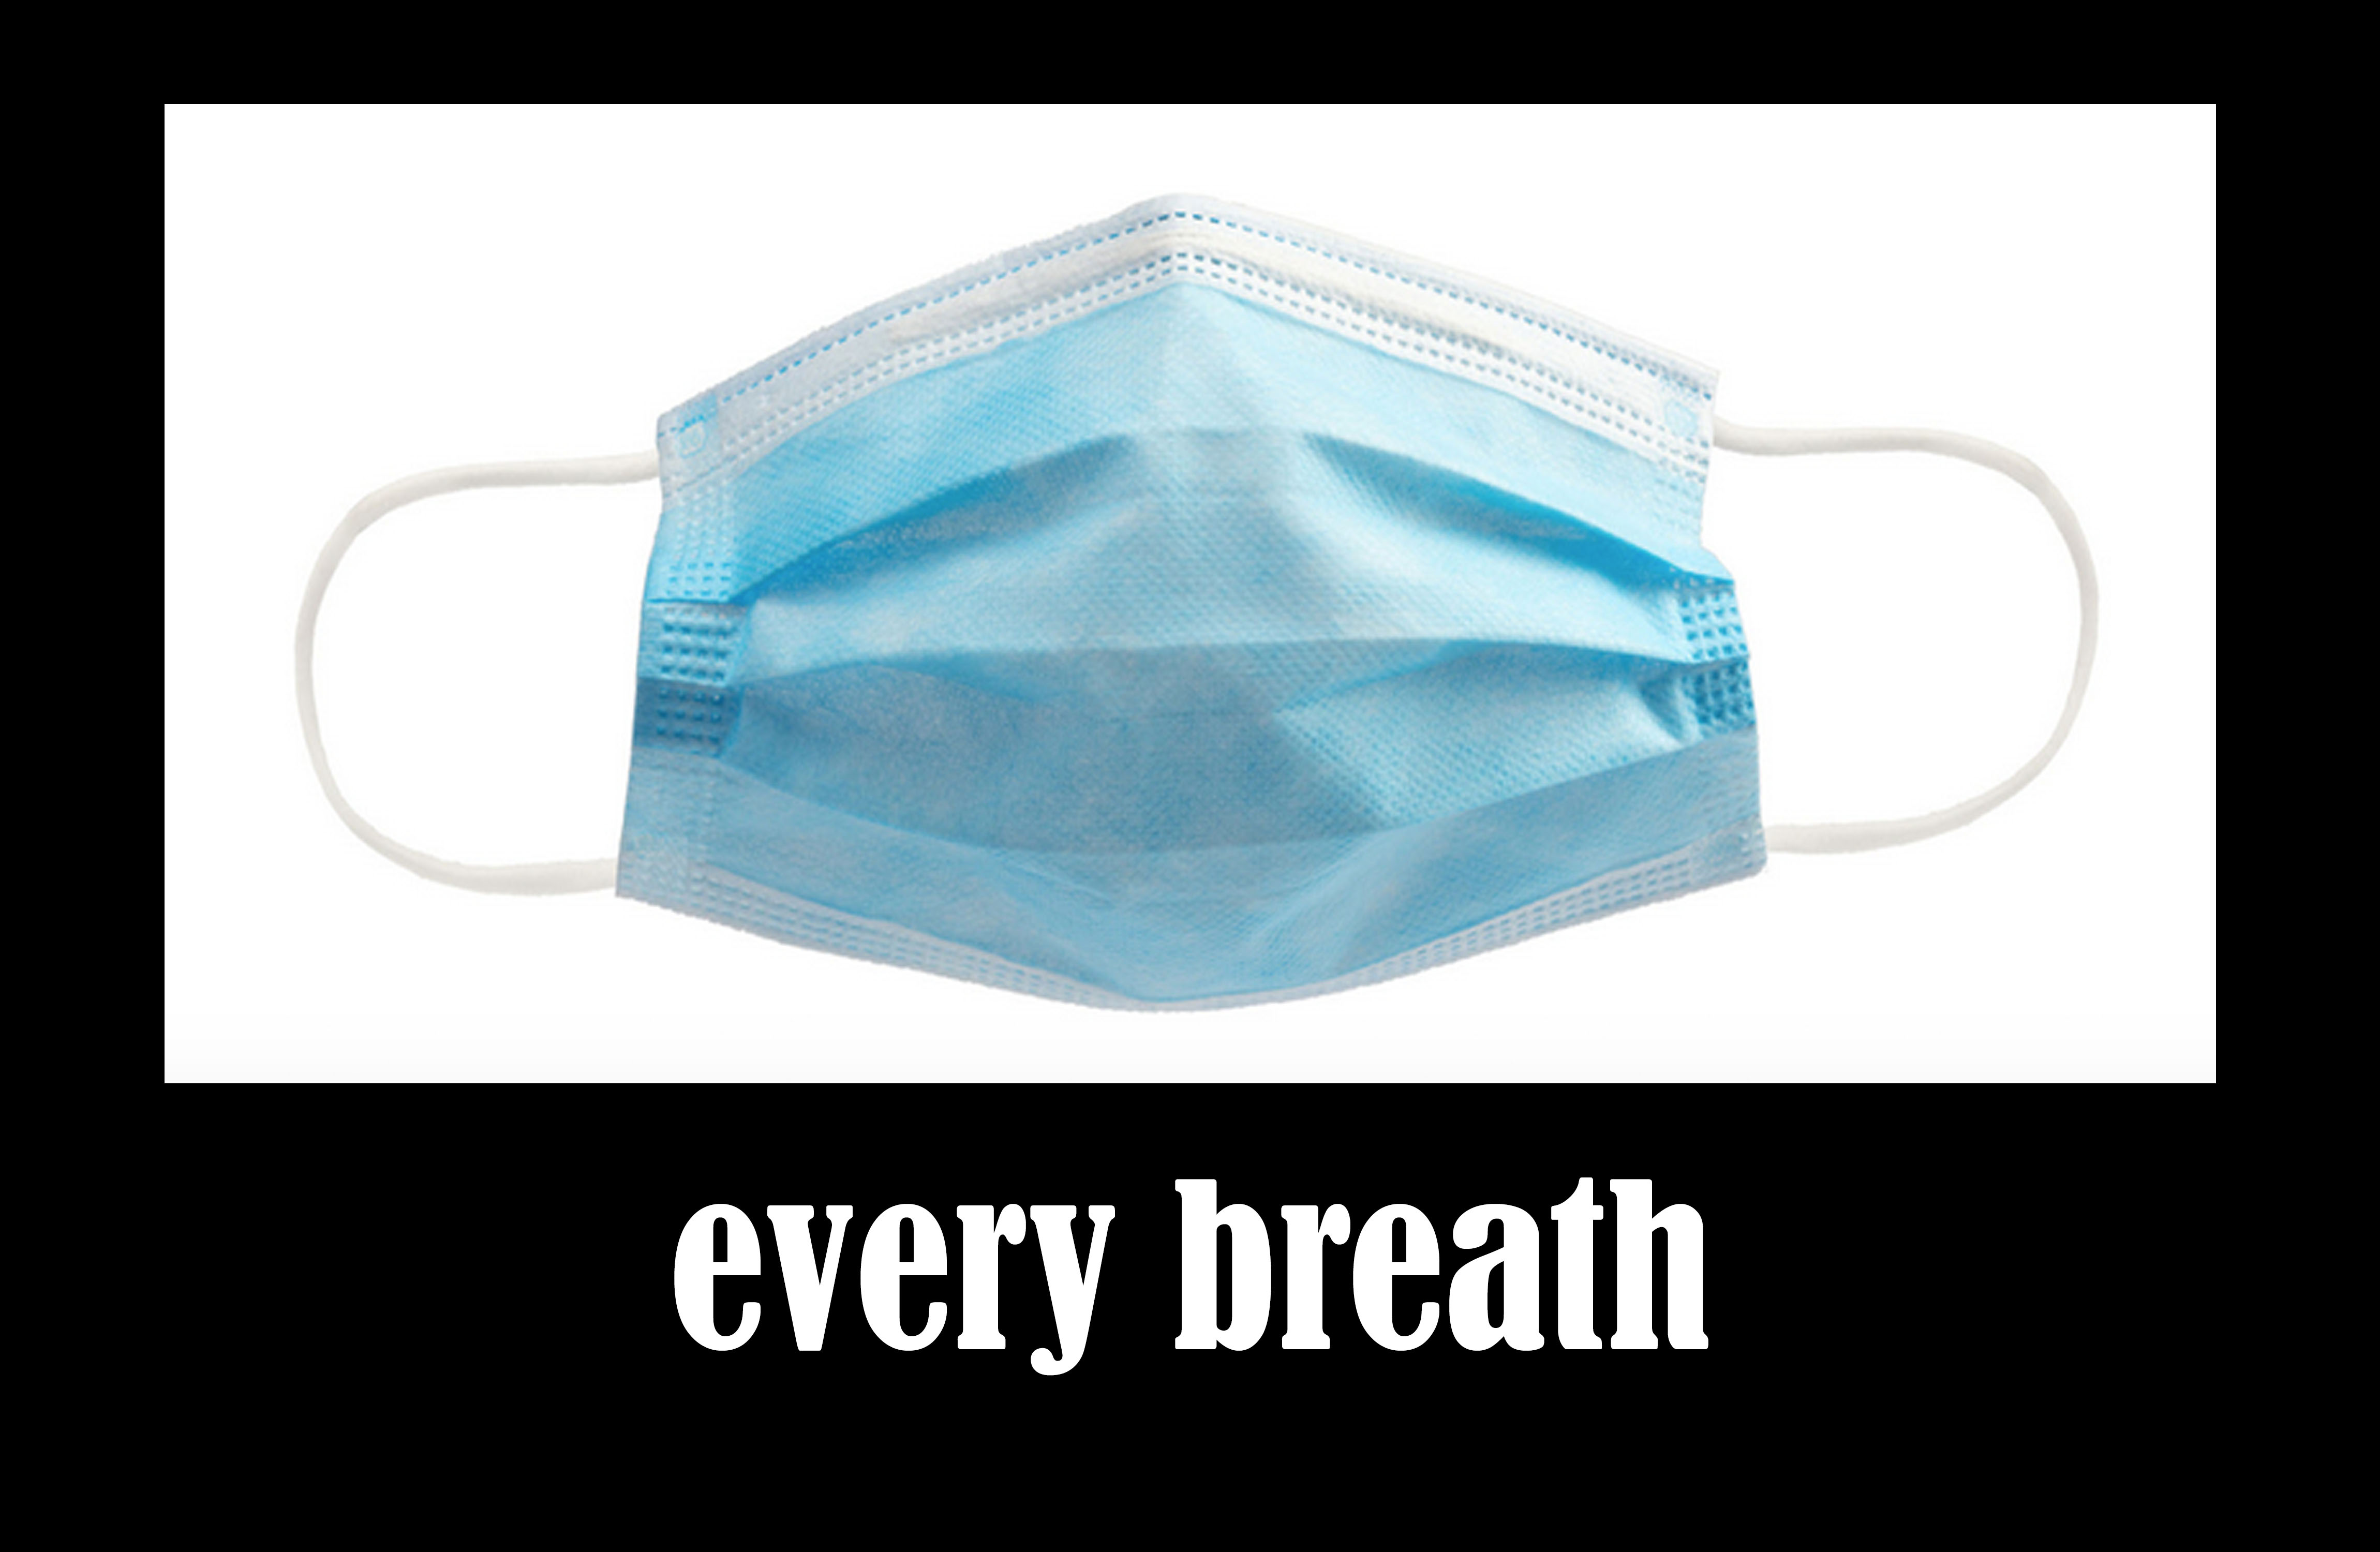 every breath copy